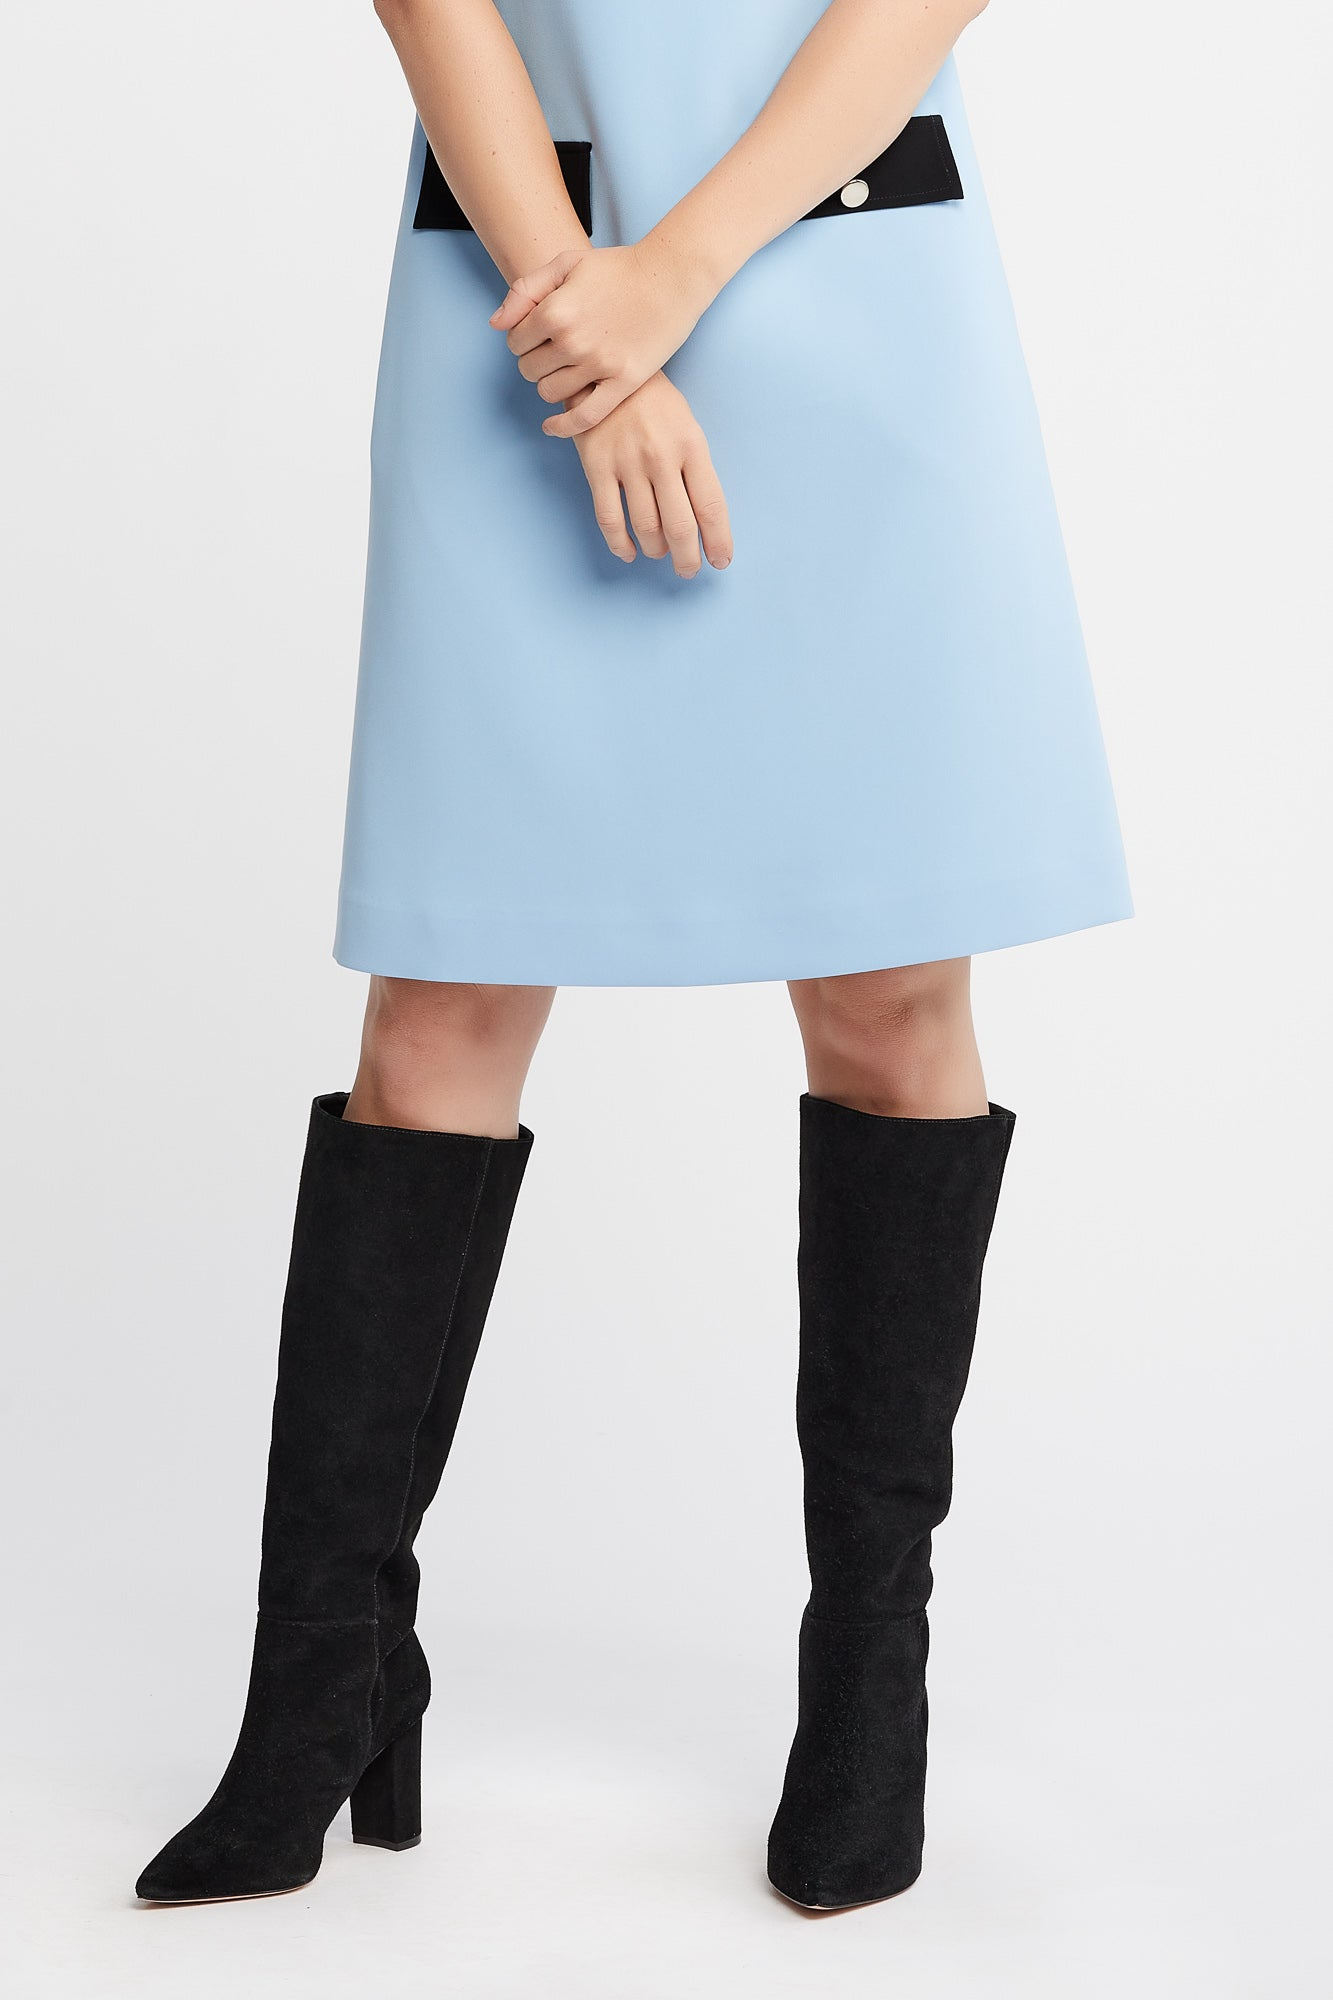 Tia Sleeveless A-line Work Dress in Baby Blue with Collar